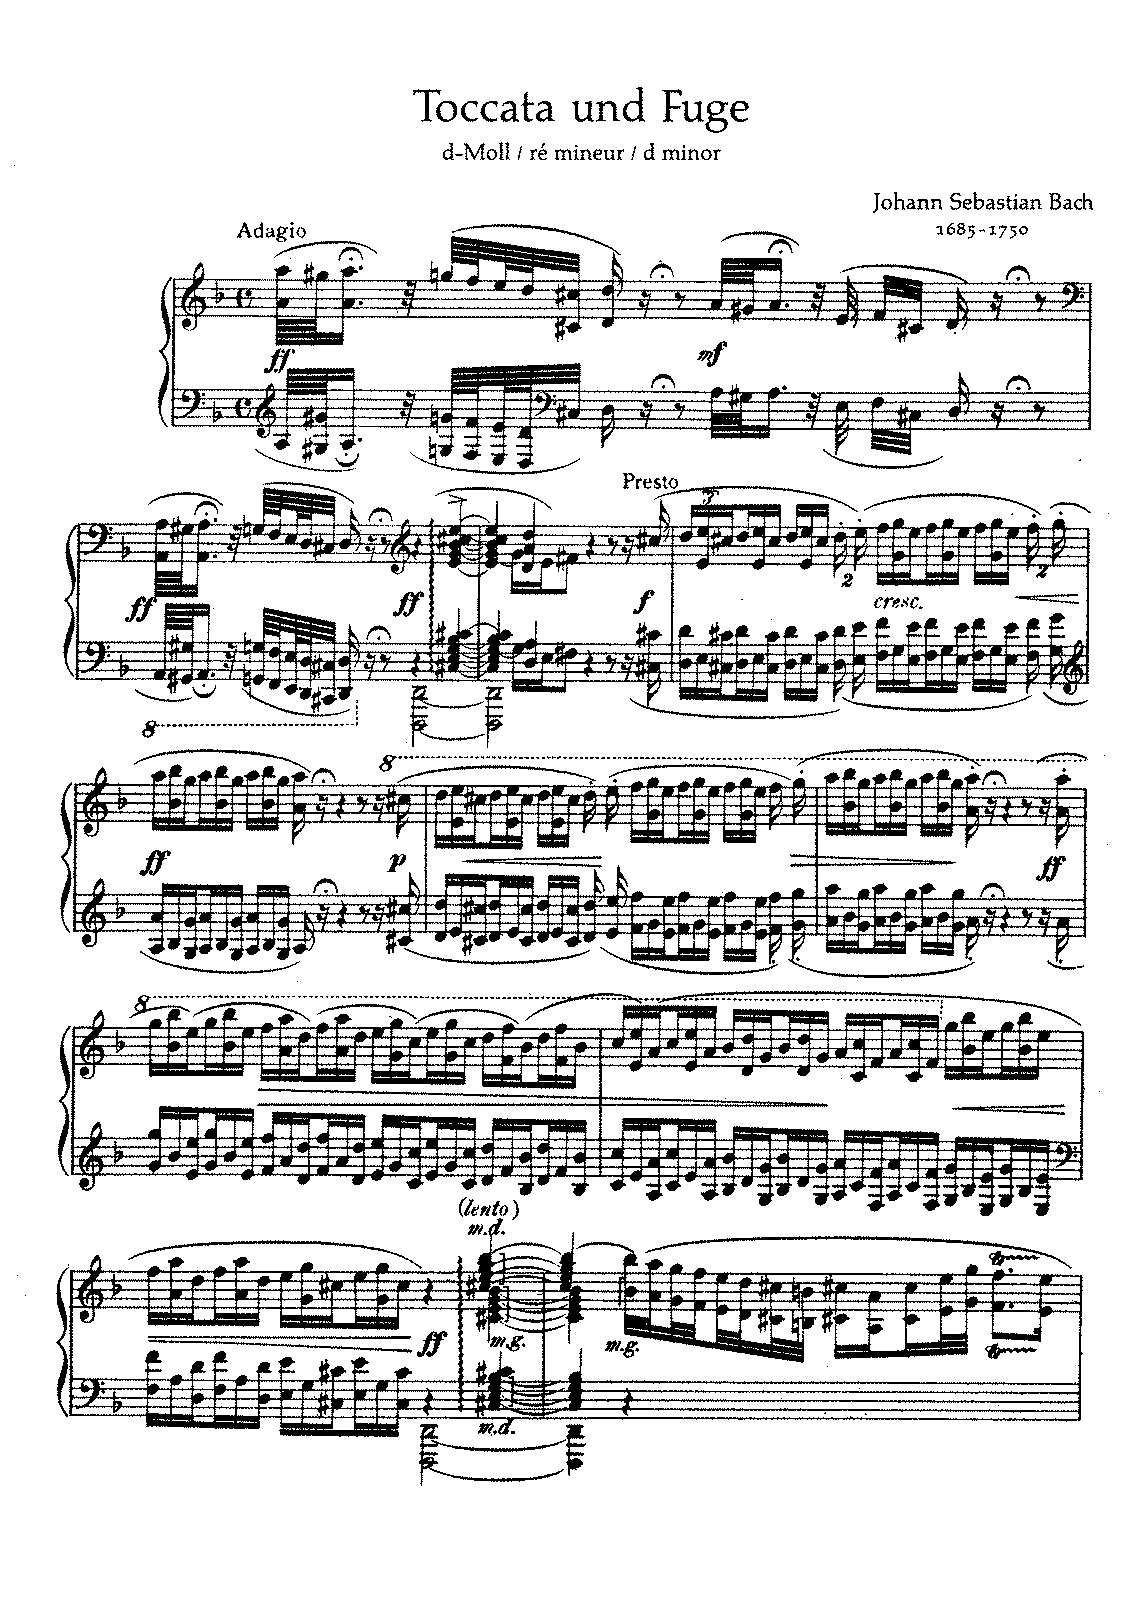 Bach-Reger-Toccata-Fugue-in-d-minor.pdf